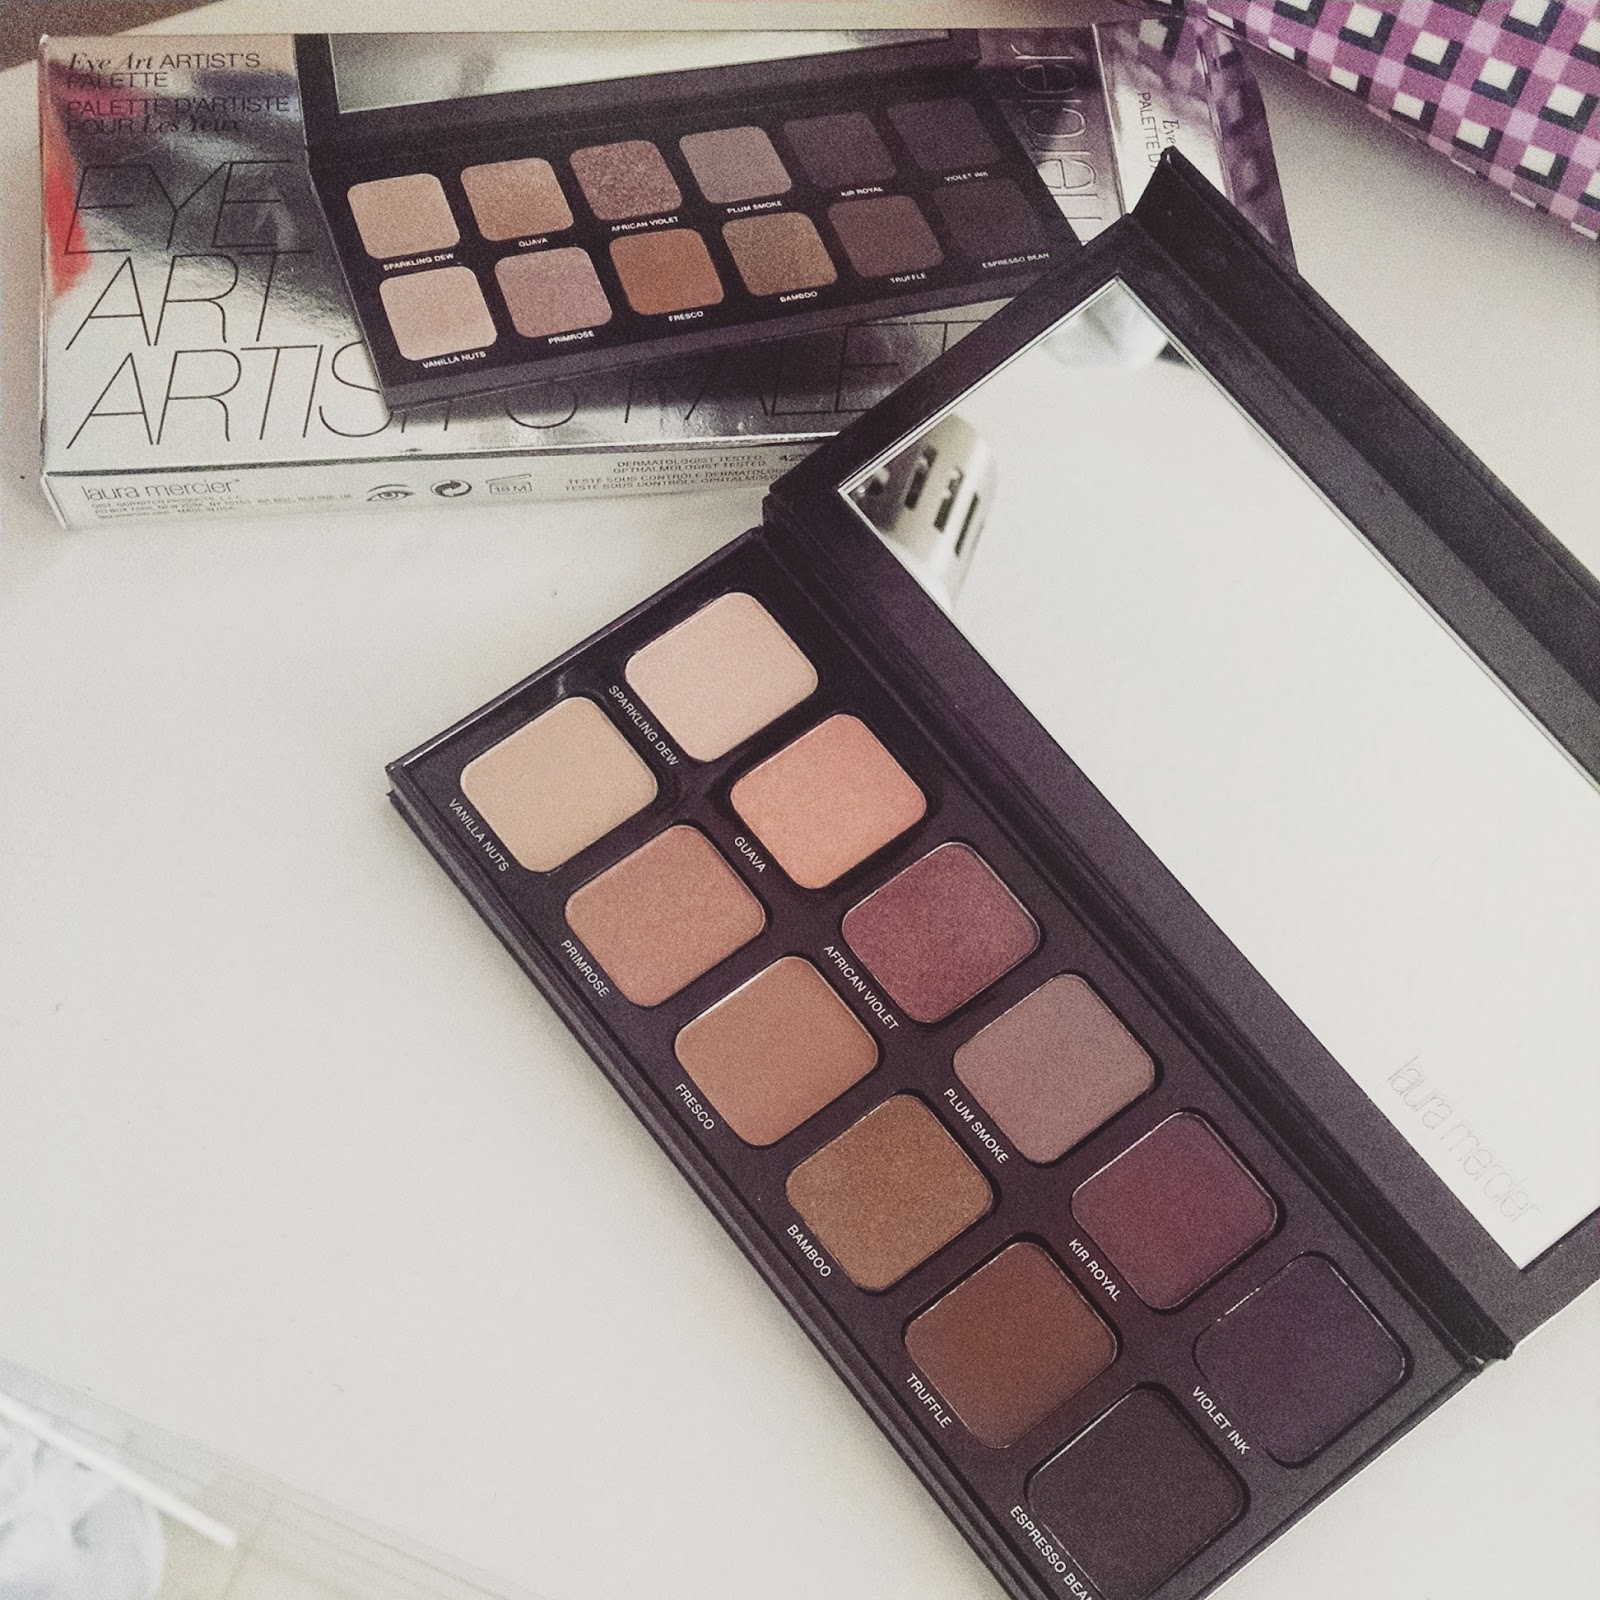 Laura mercier eye art artist's palette for eyes seohora review